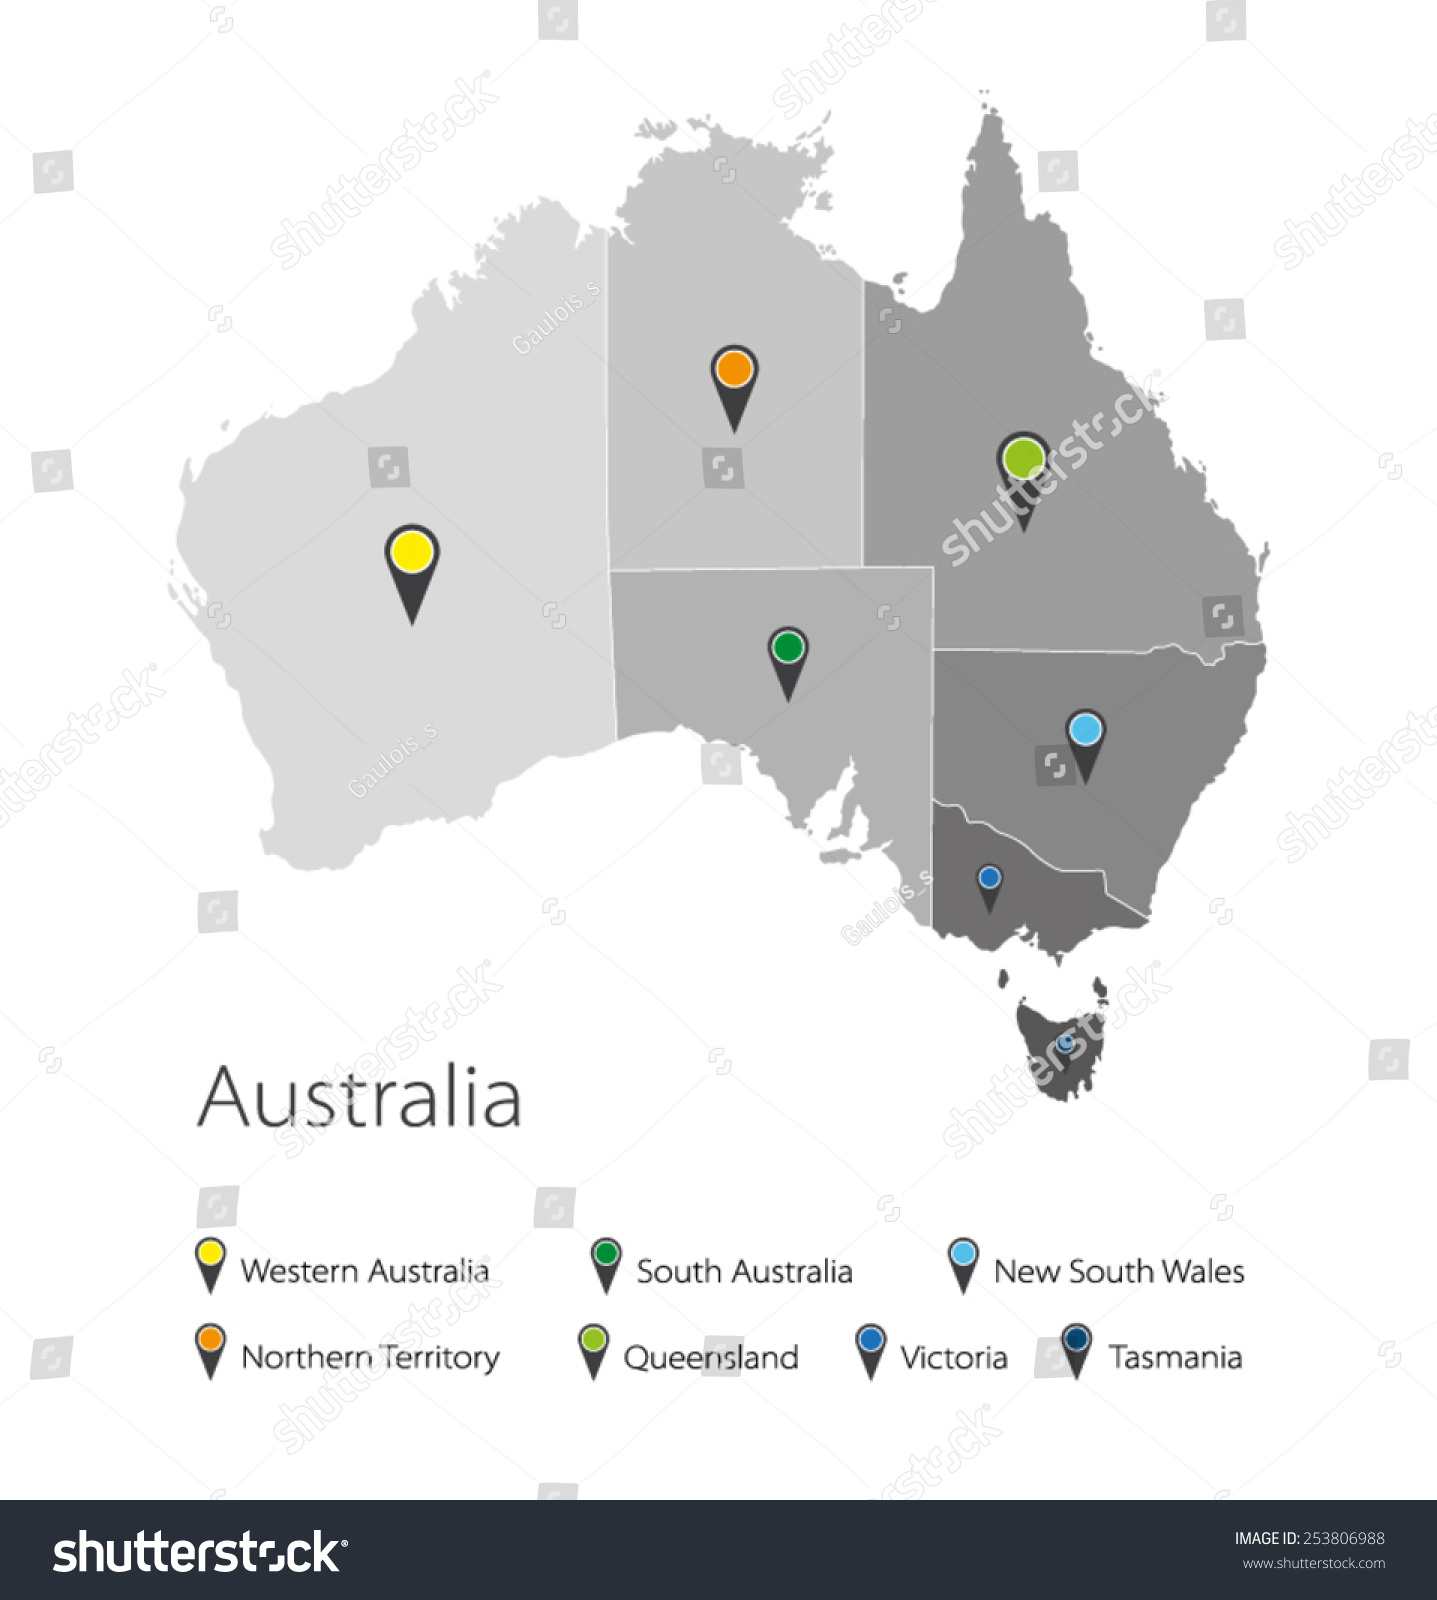 Map Australia Political Division Stock Vector Shutterstock - Australia political map